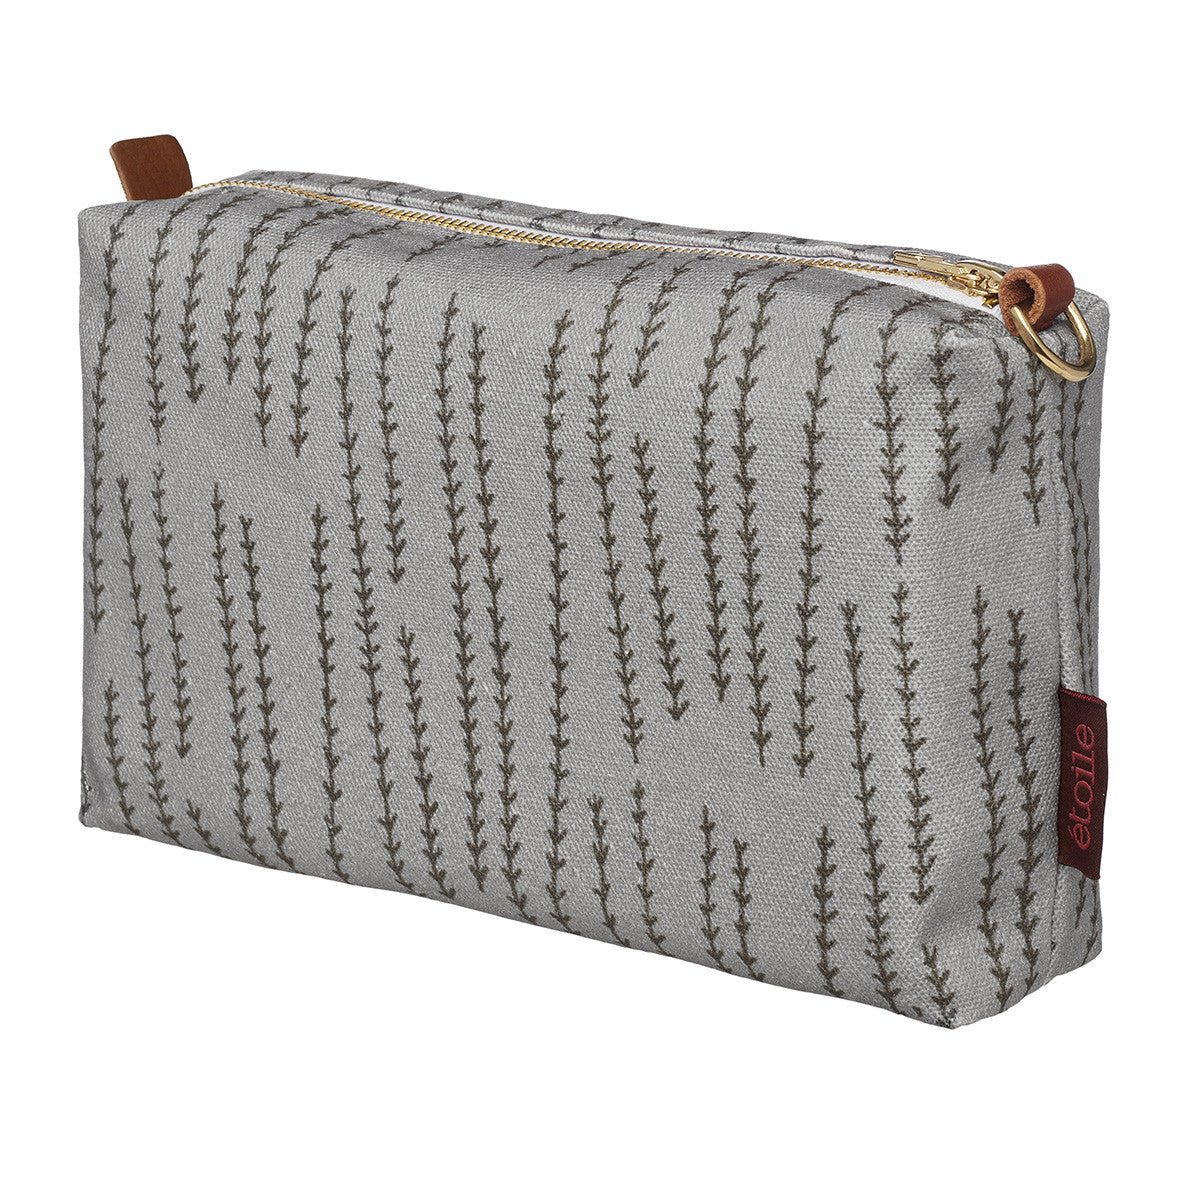 Graphic Rosemary Sprig Pattern Printed Cotton Canvas Toiletry Travel or Wash Bag in Dove Grey with Stone Grey Perfect for all your cosmetic and beauty needs while travelling Ships from Canada (USA)